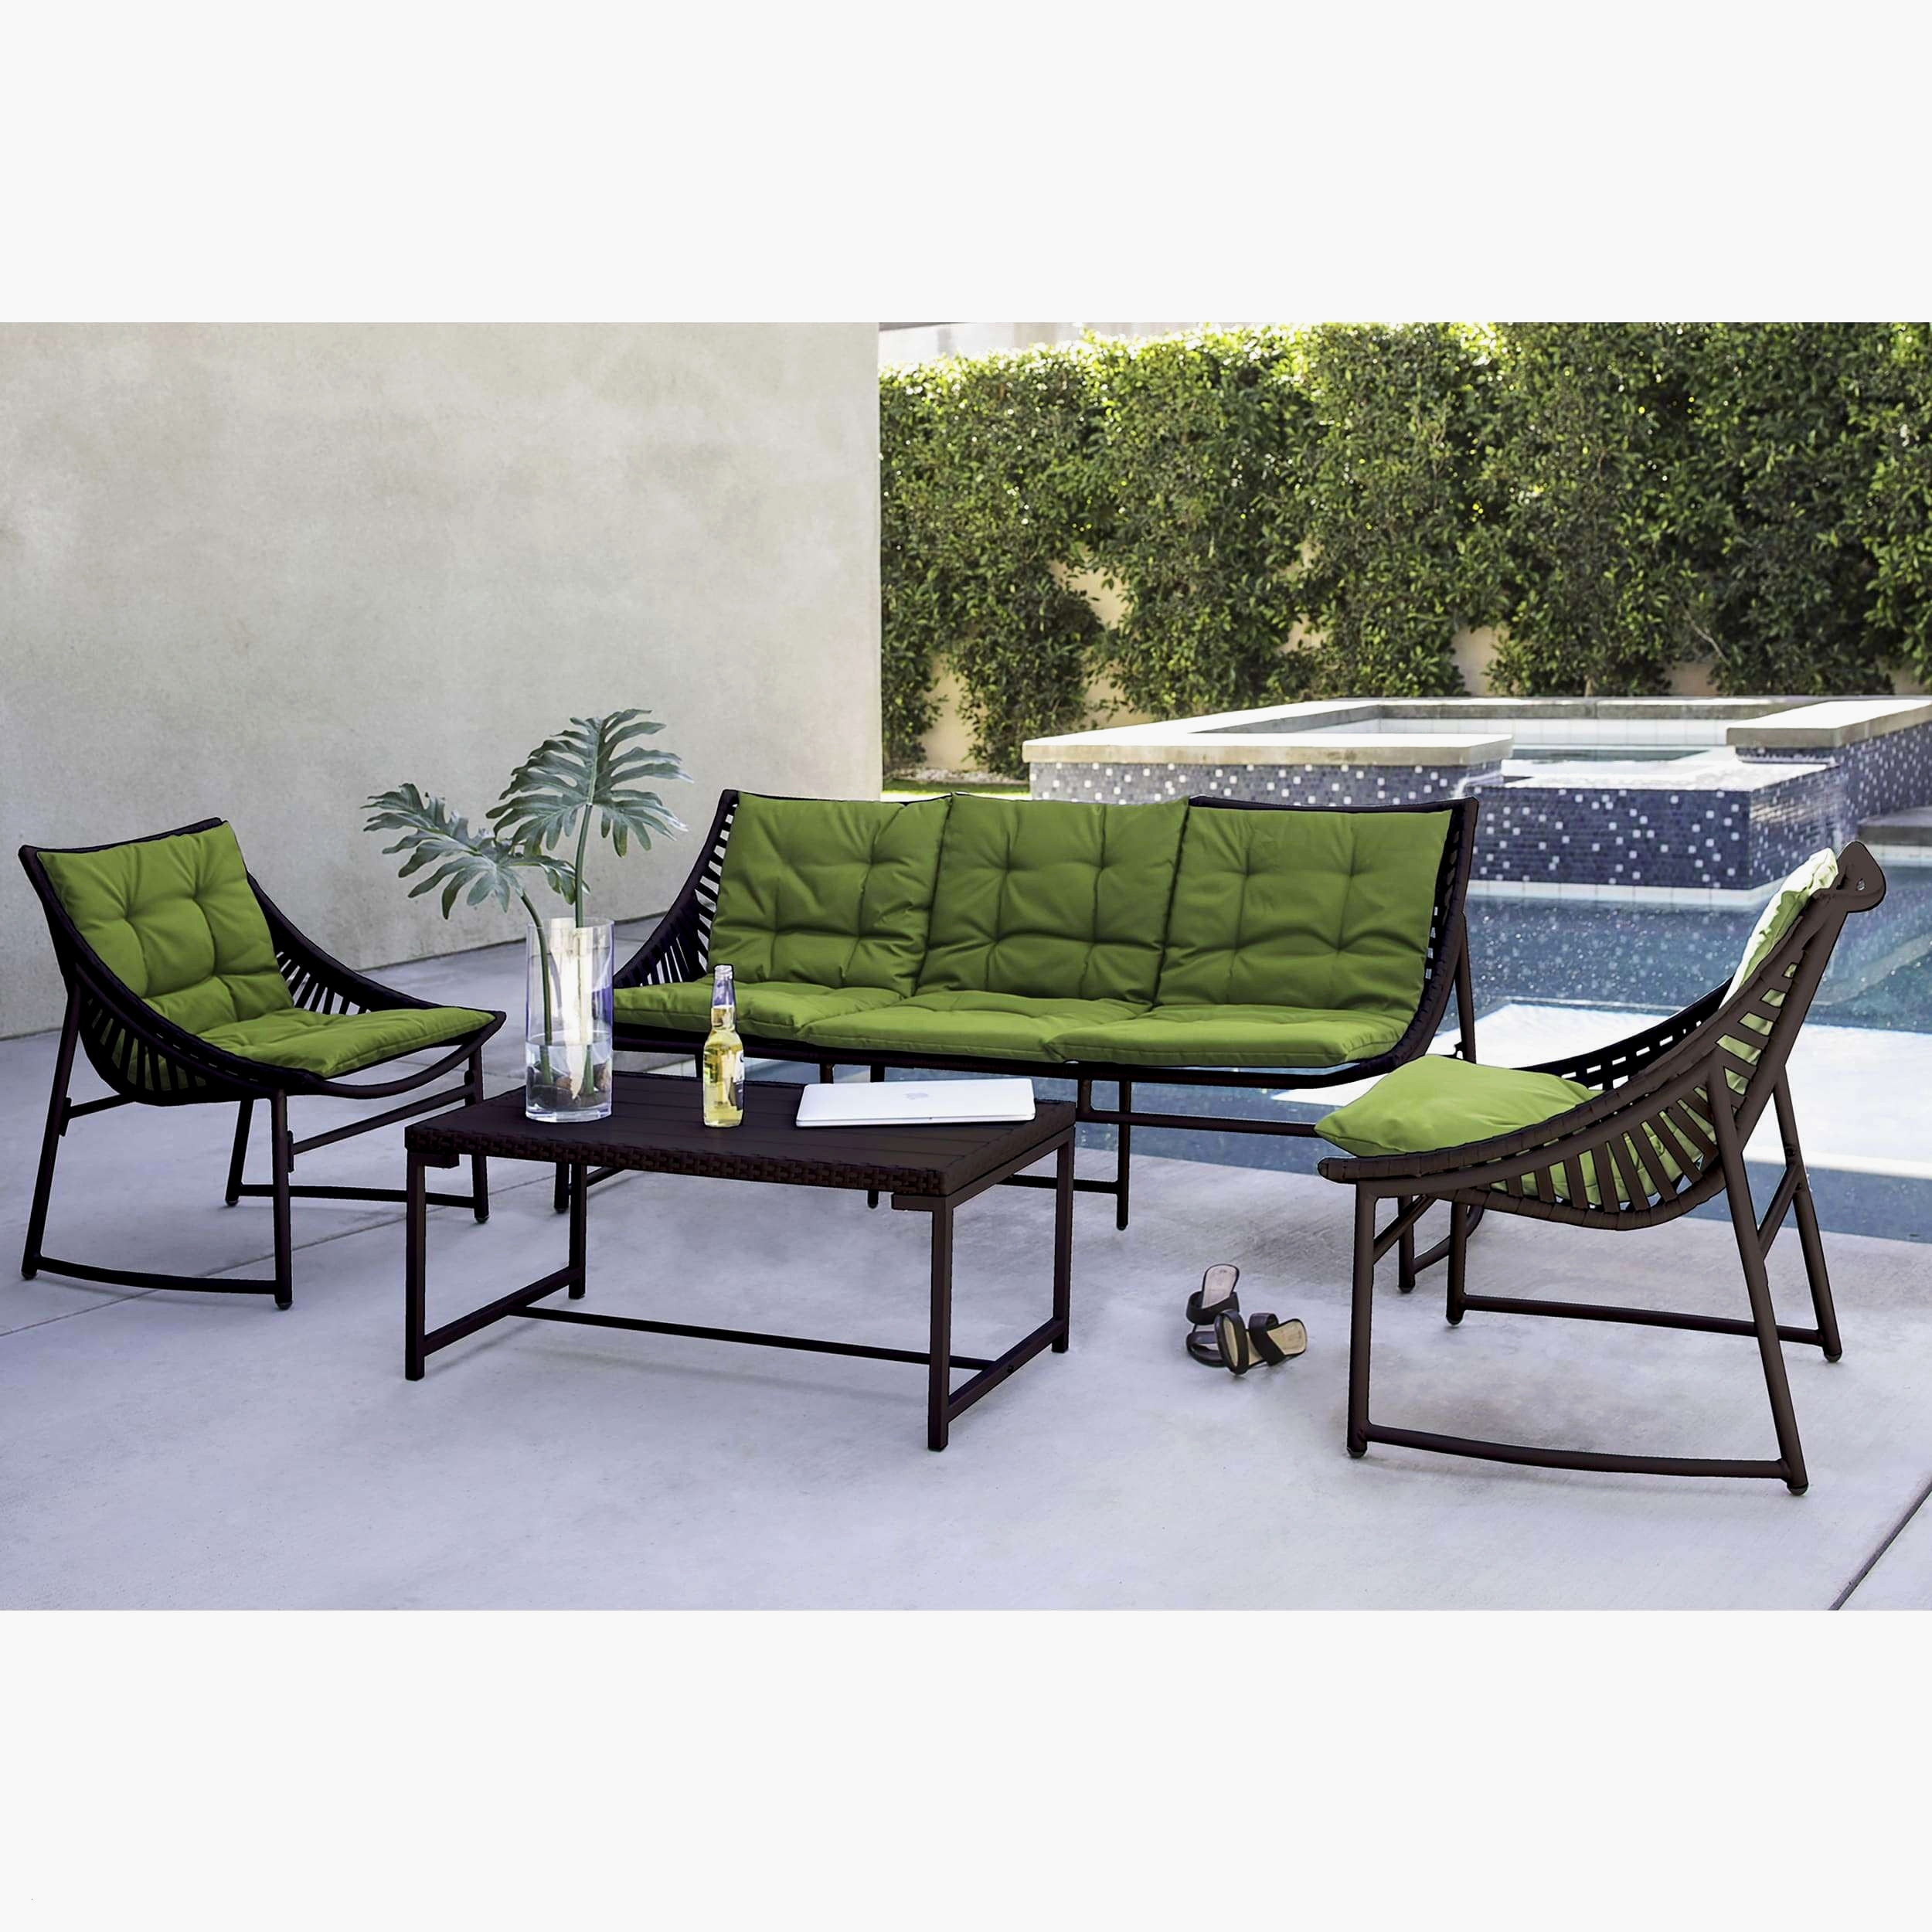 jcpenney living room furniture awesome jcpenney outdoor furniture - Jcpenney Patio Furniture